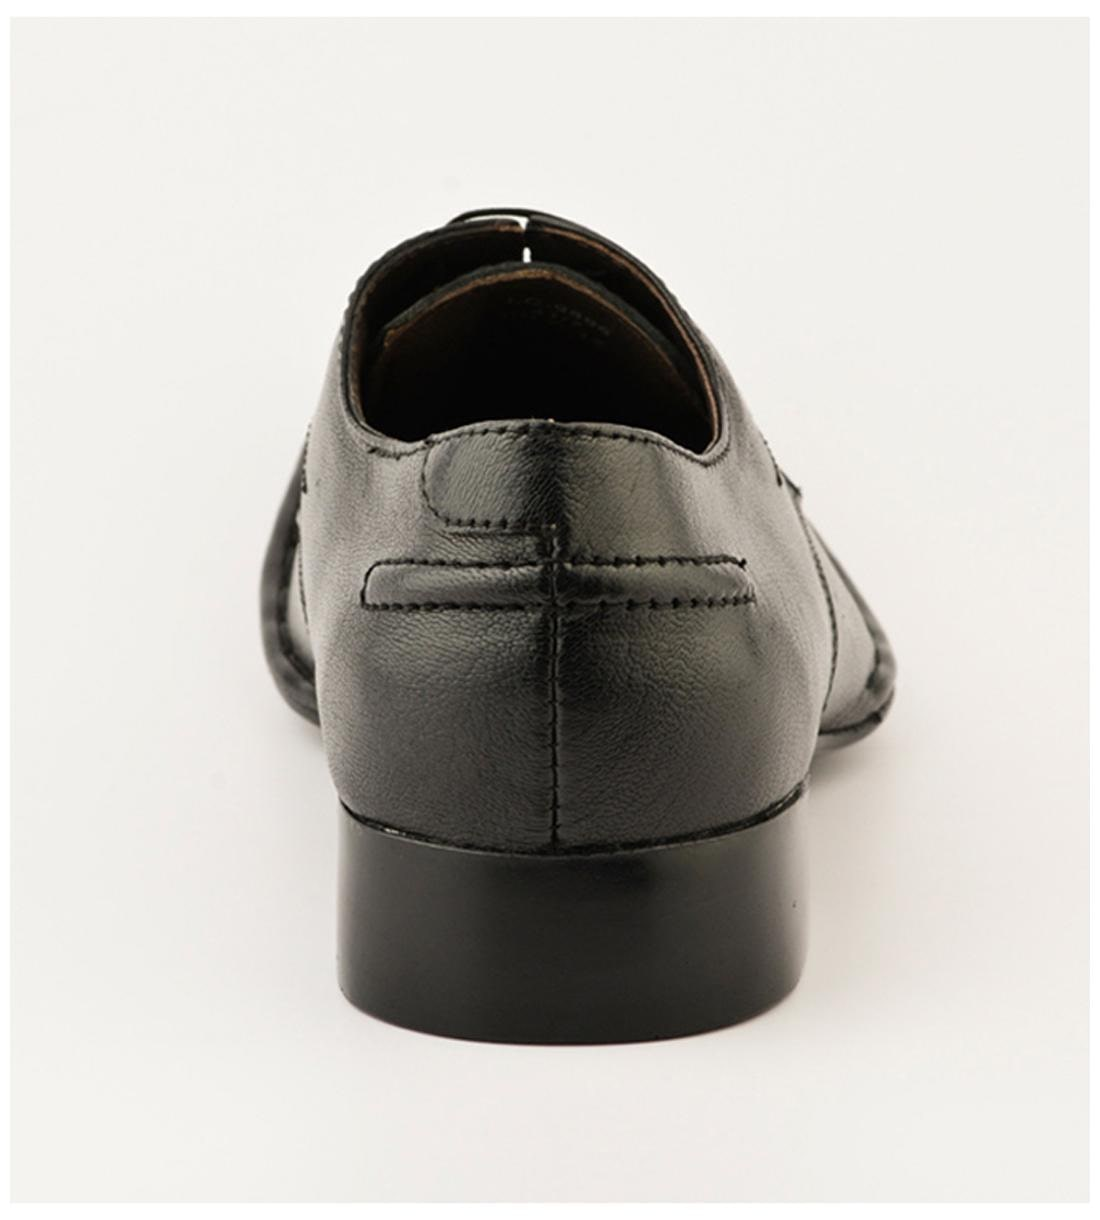 d5cac14ba2f Buy Lee Cooper Men Black Formal Shoes - Lc9896 Online at Low Prices in India  - Paytmmall.com